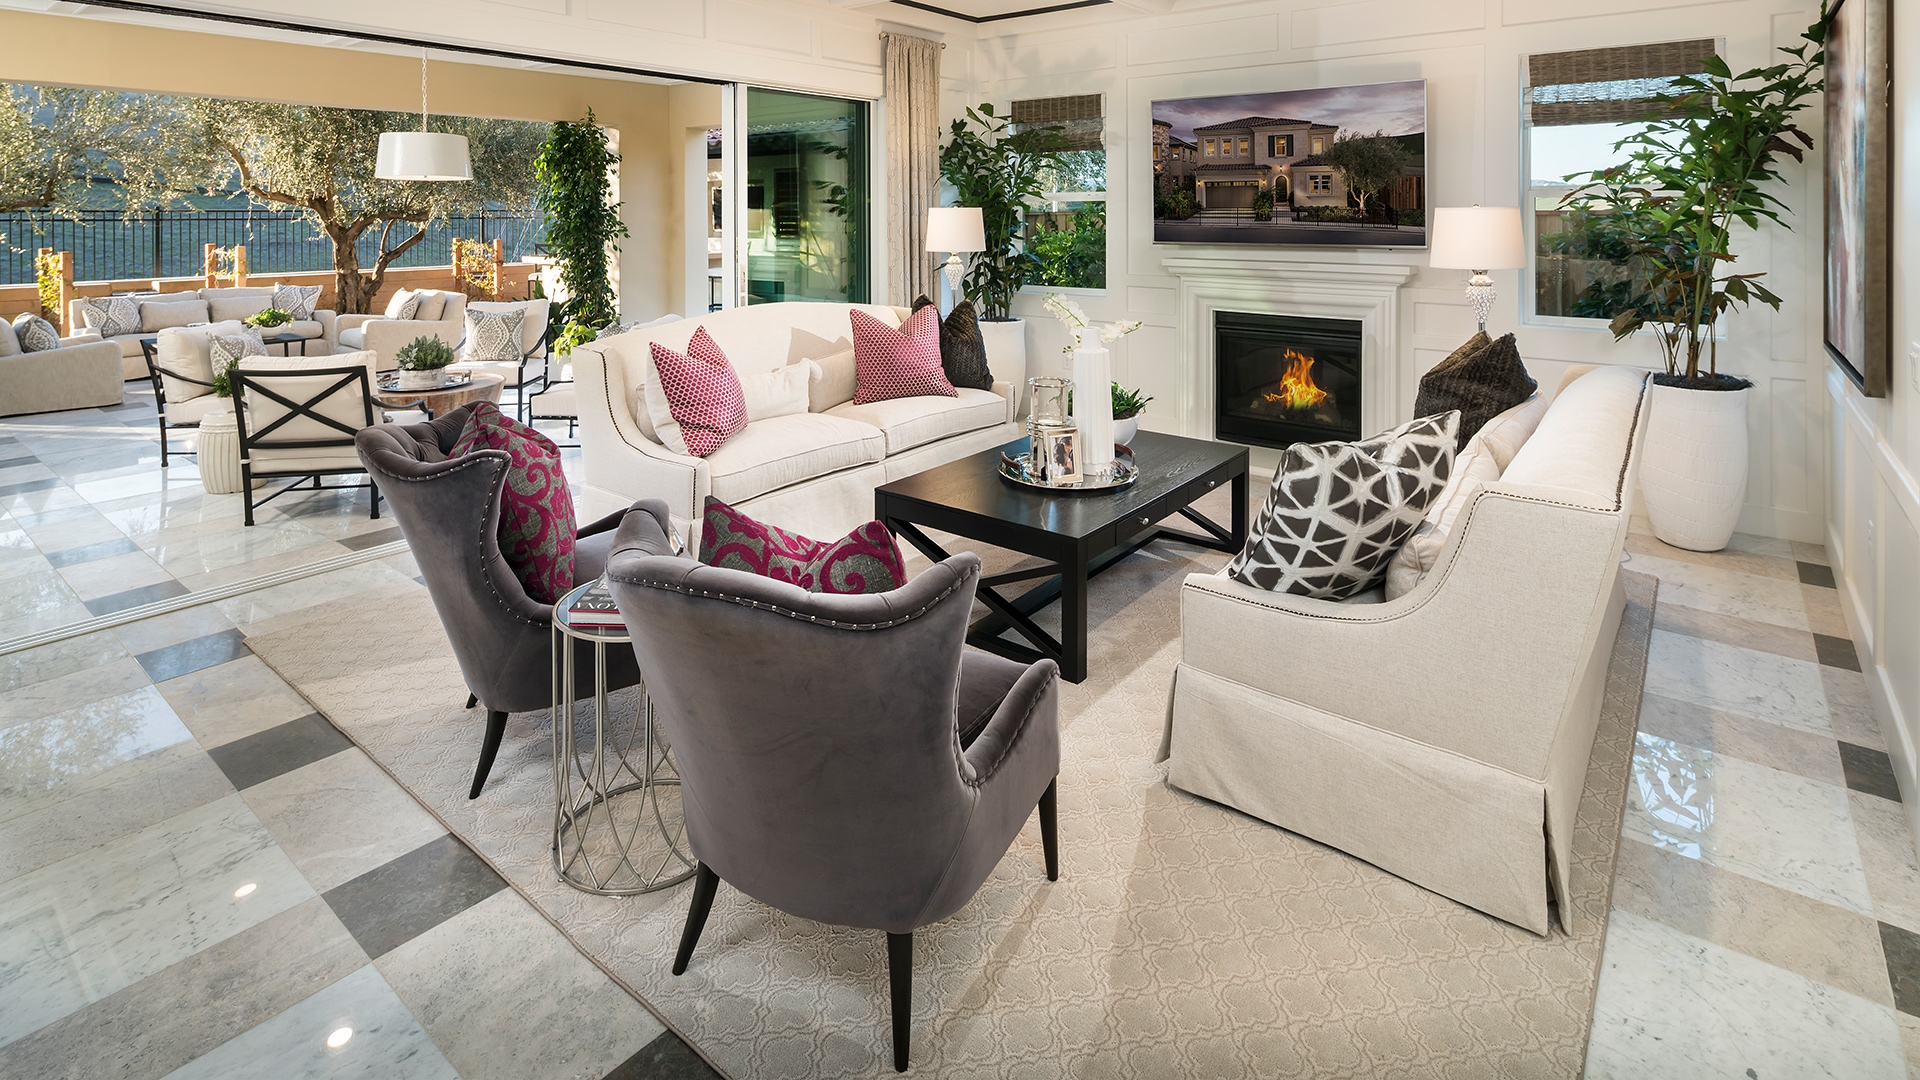 The Knolls at Tassajara Hills offer spacious home designs with impressive outdoor living options